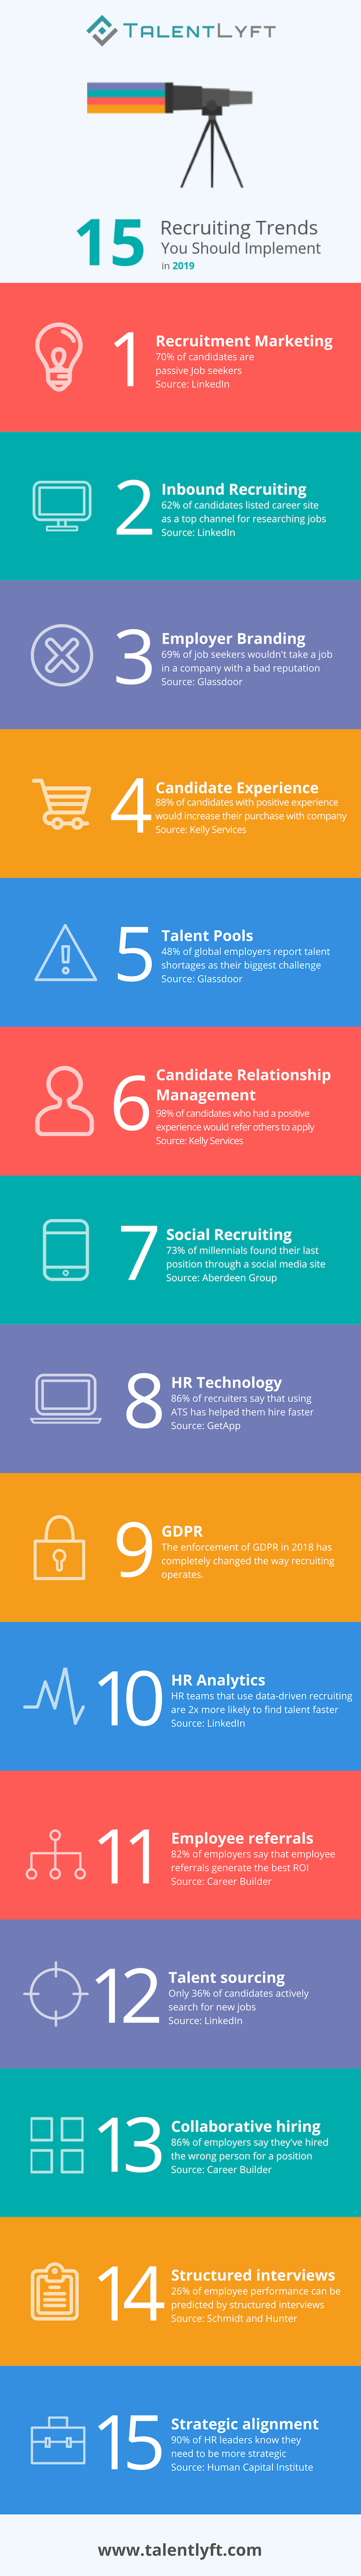 15 recruiting trends to implement in 2019